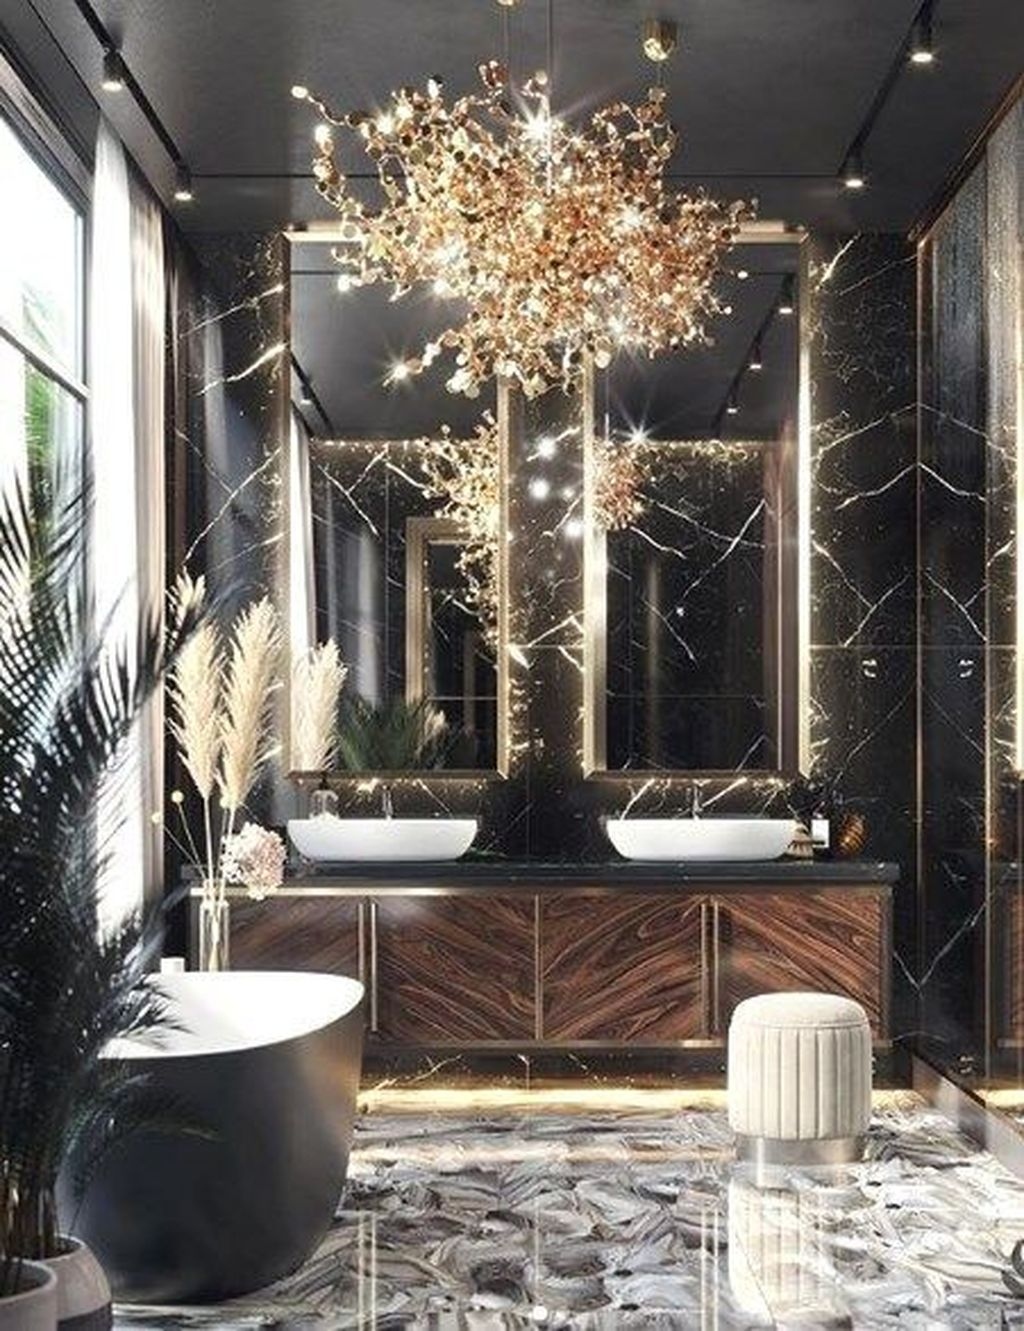 Inspiring Bathroom Interior Design Ideas 20